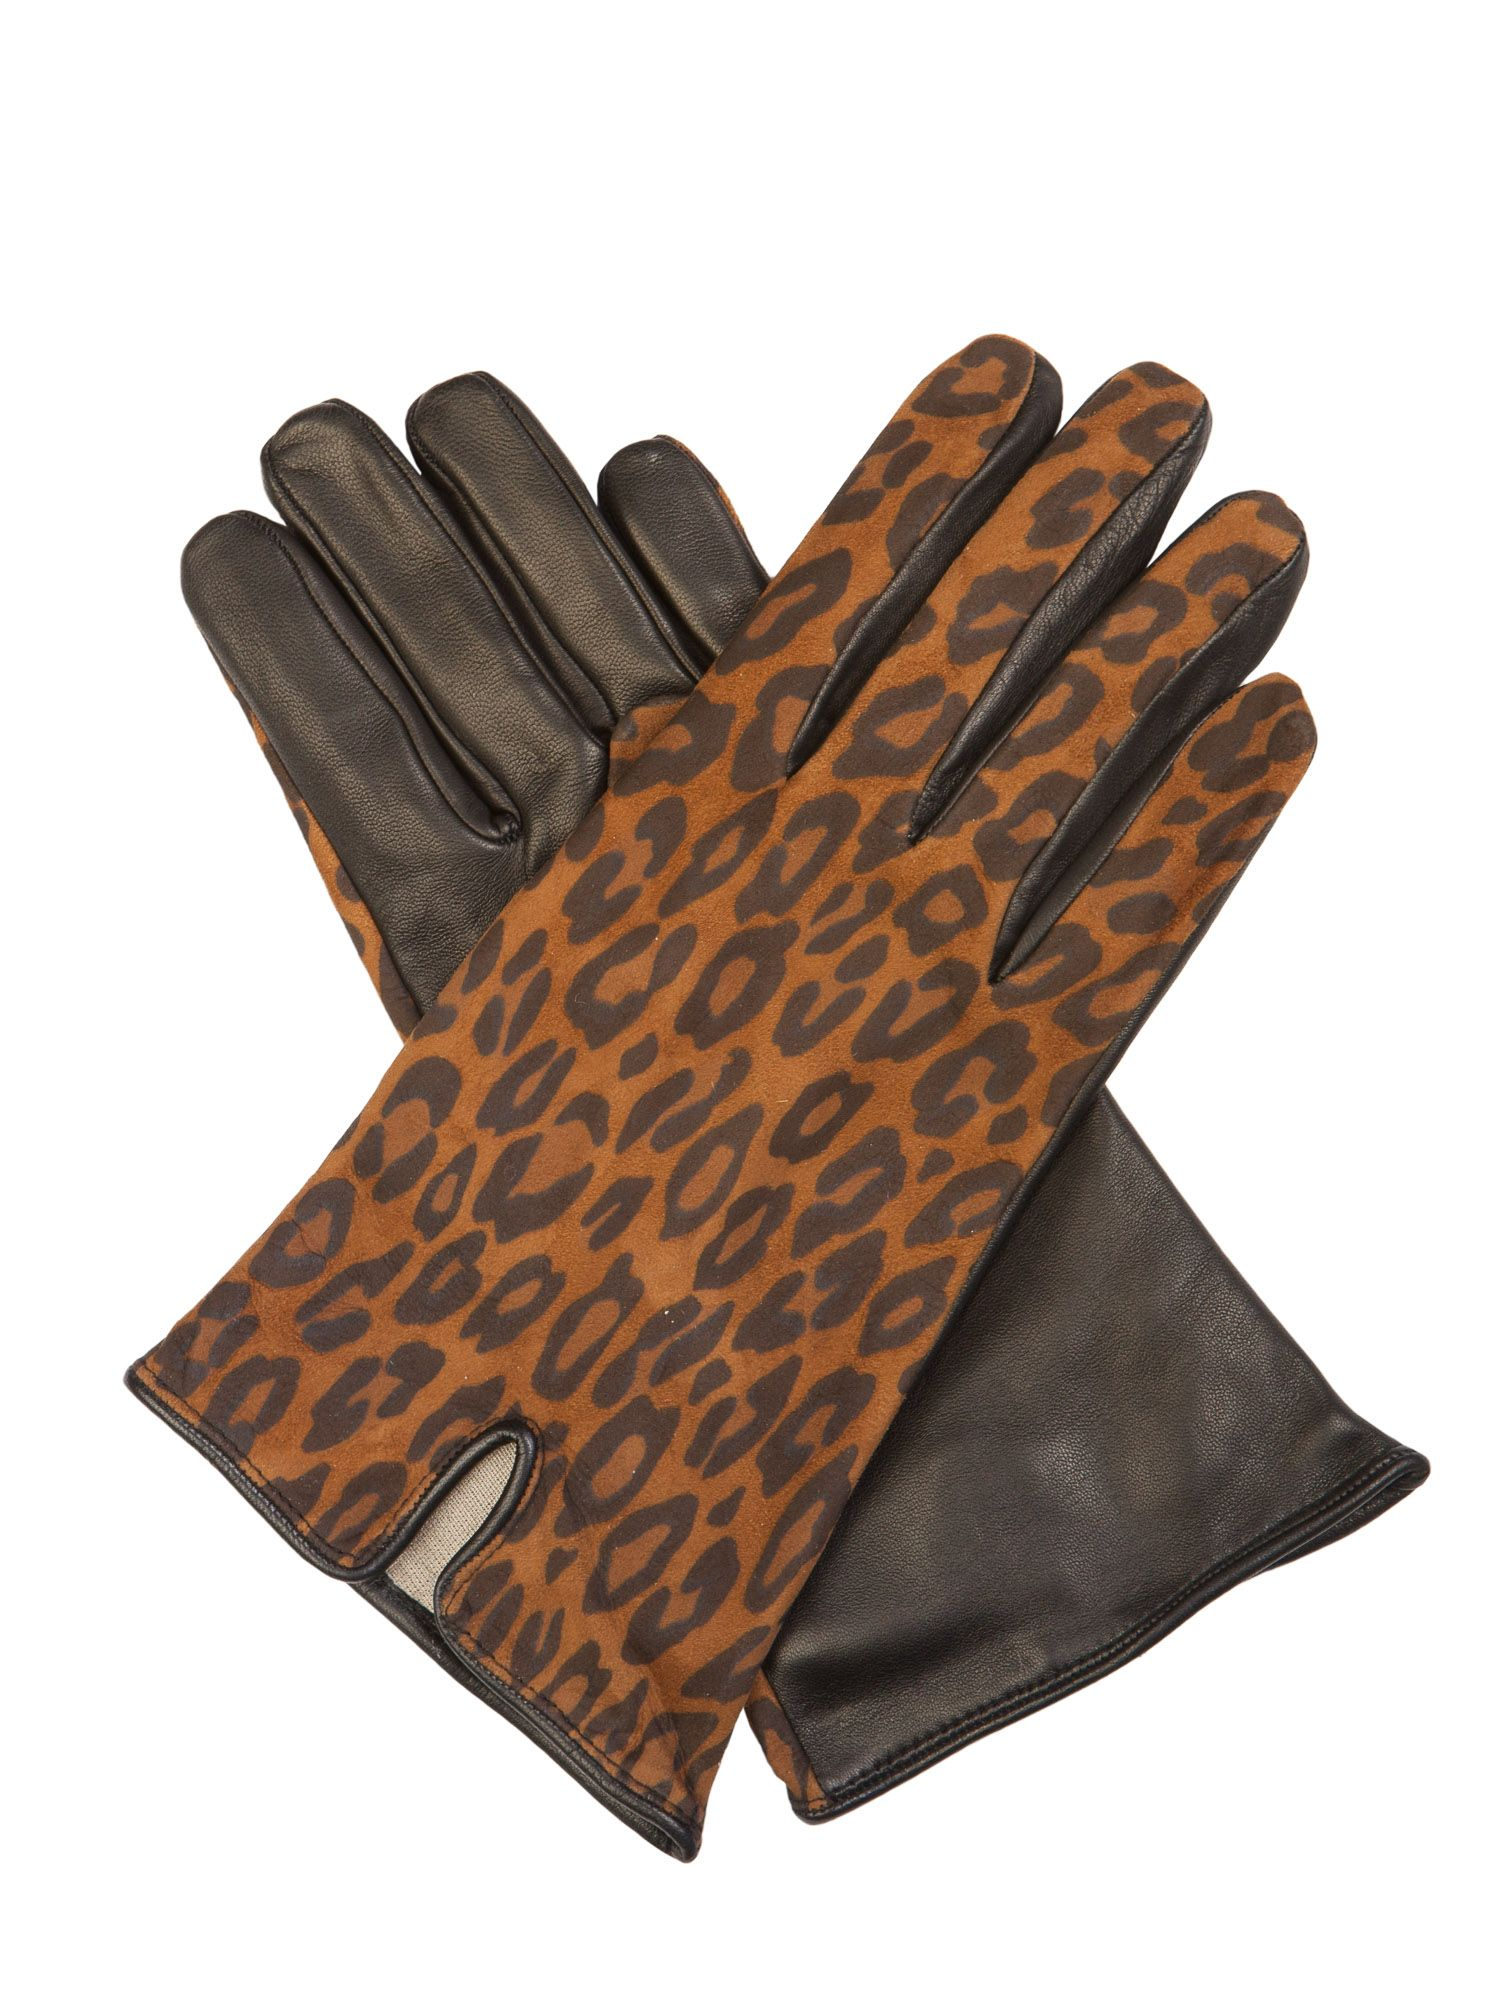 Vintage Style Gloves- Long, Wrist, Evening, Day, Leather, Lace Cornelia James Eloise Suede Animal Print Gloves £95.00 AT vintagedancer.com